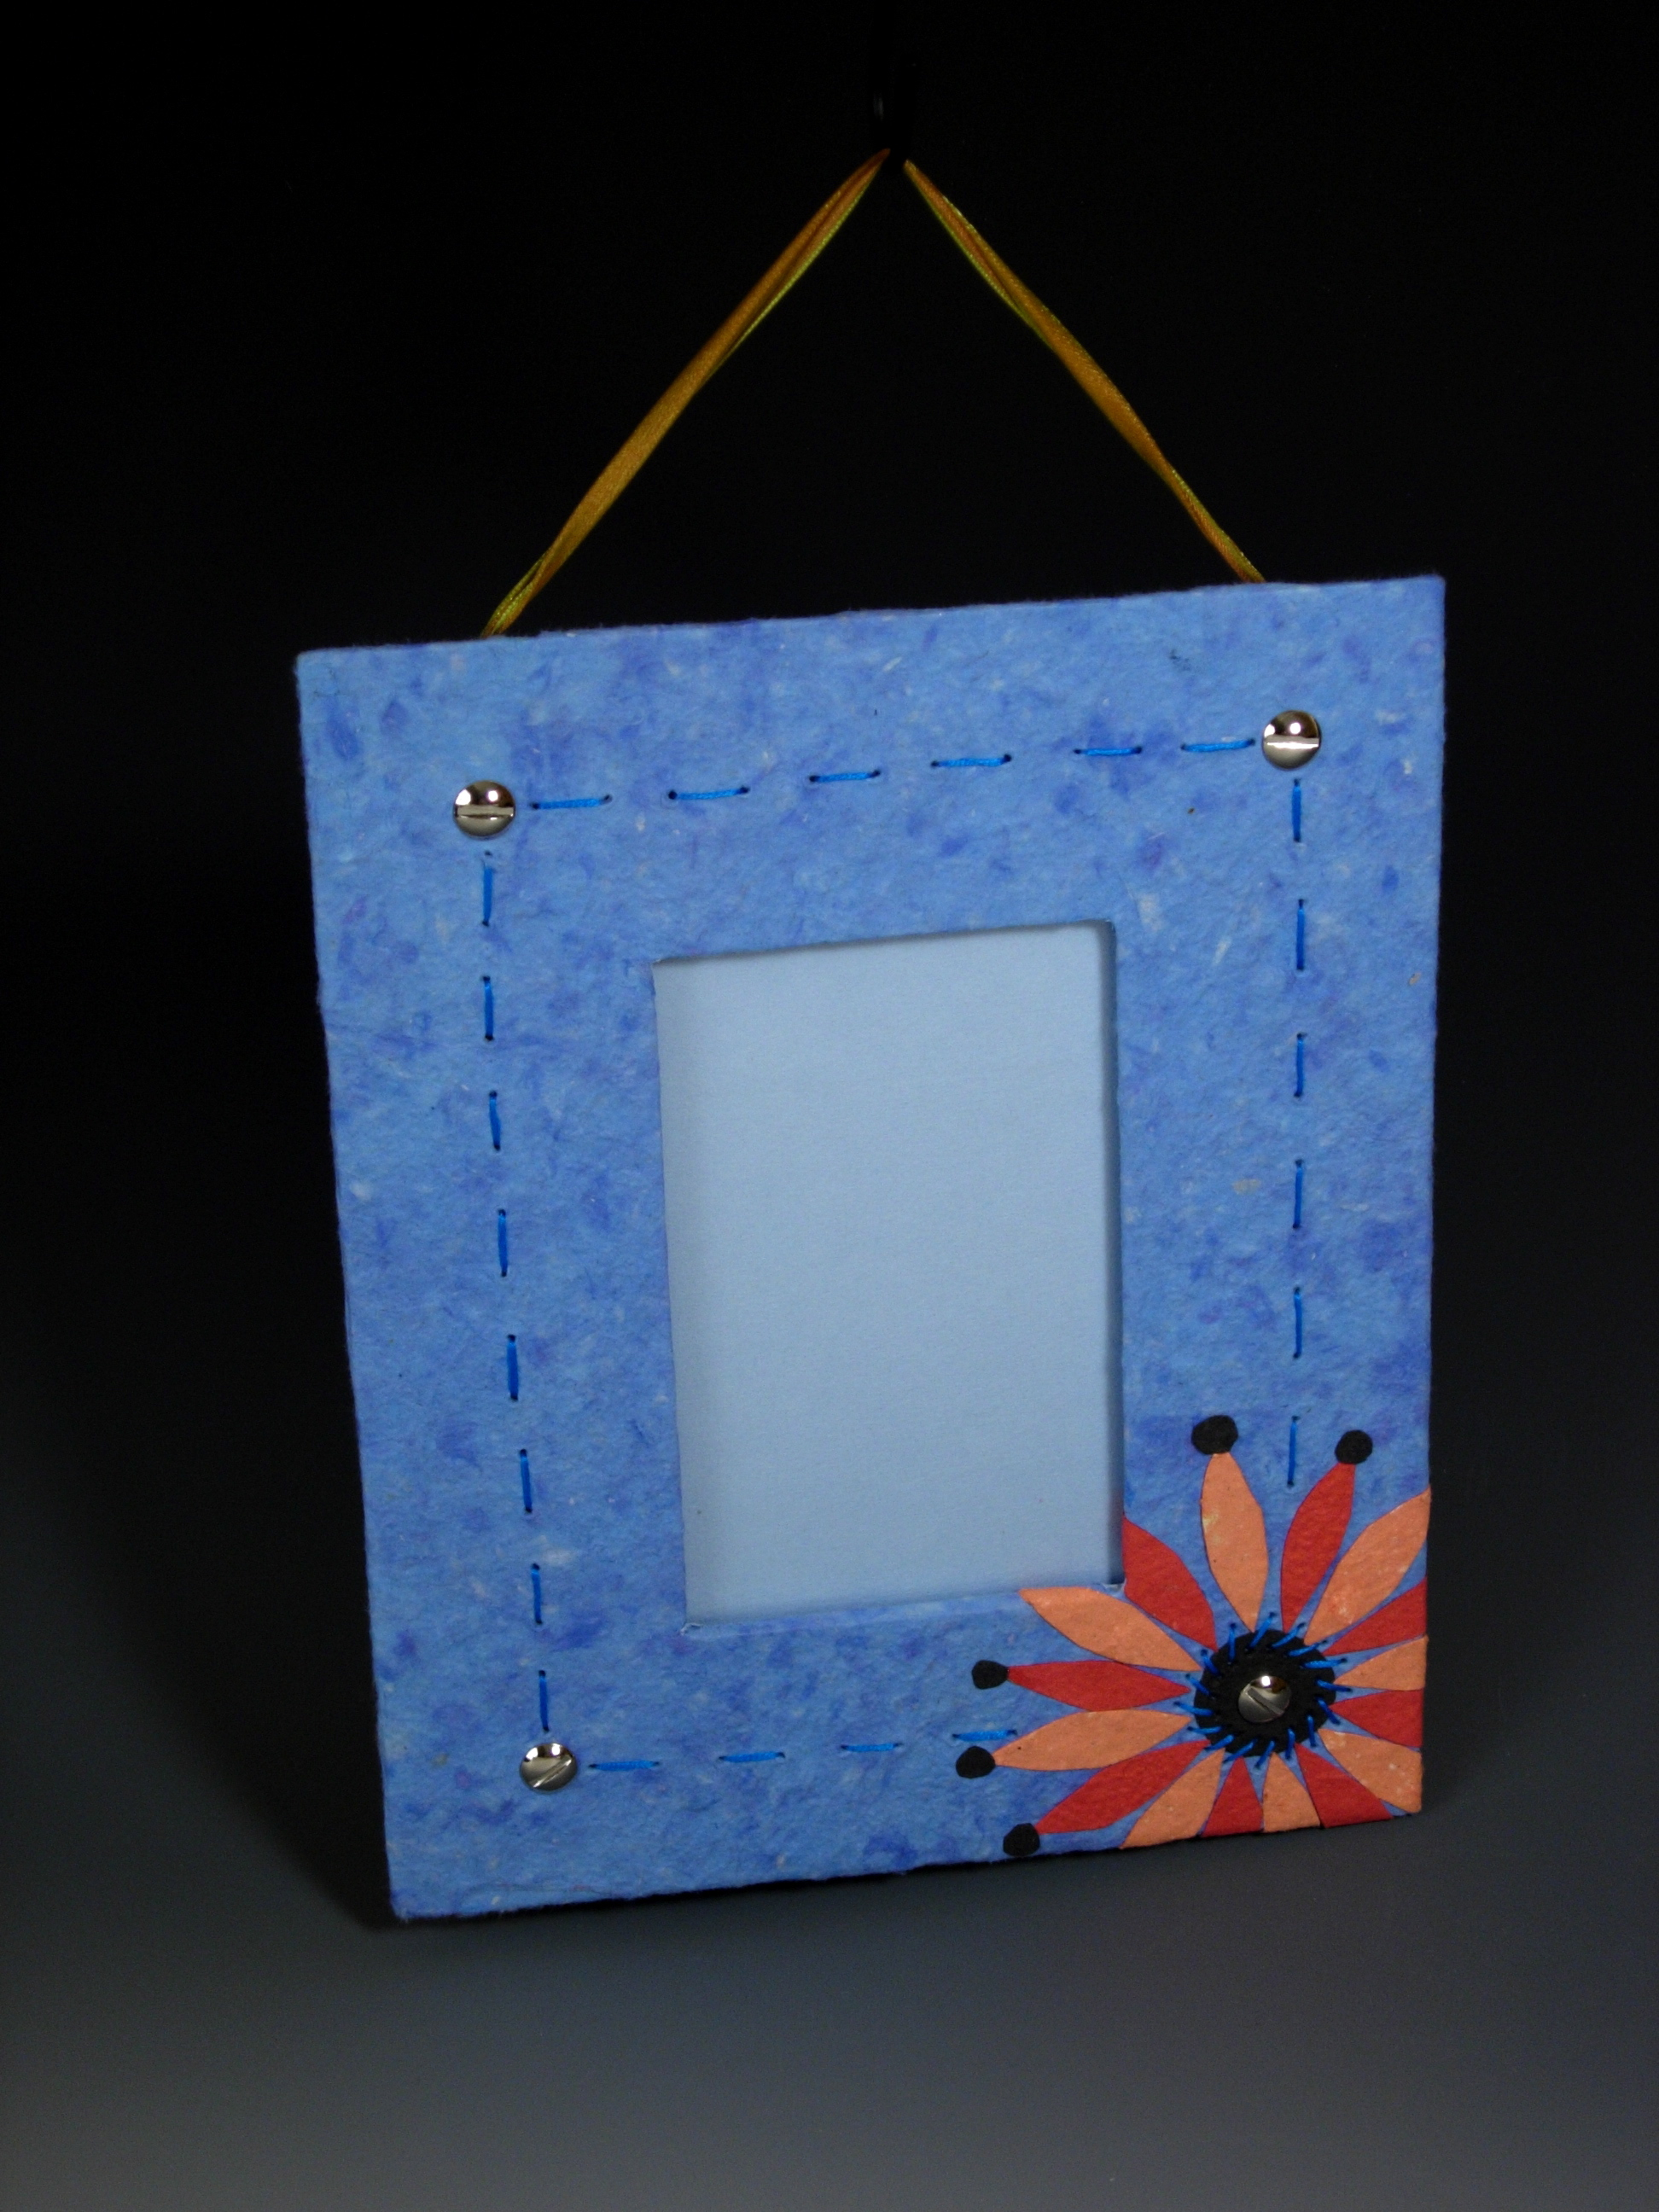 flower-with-dots-frame_3095971553_o.jpg